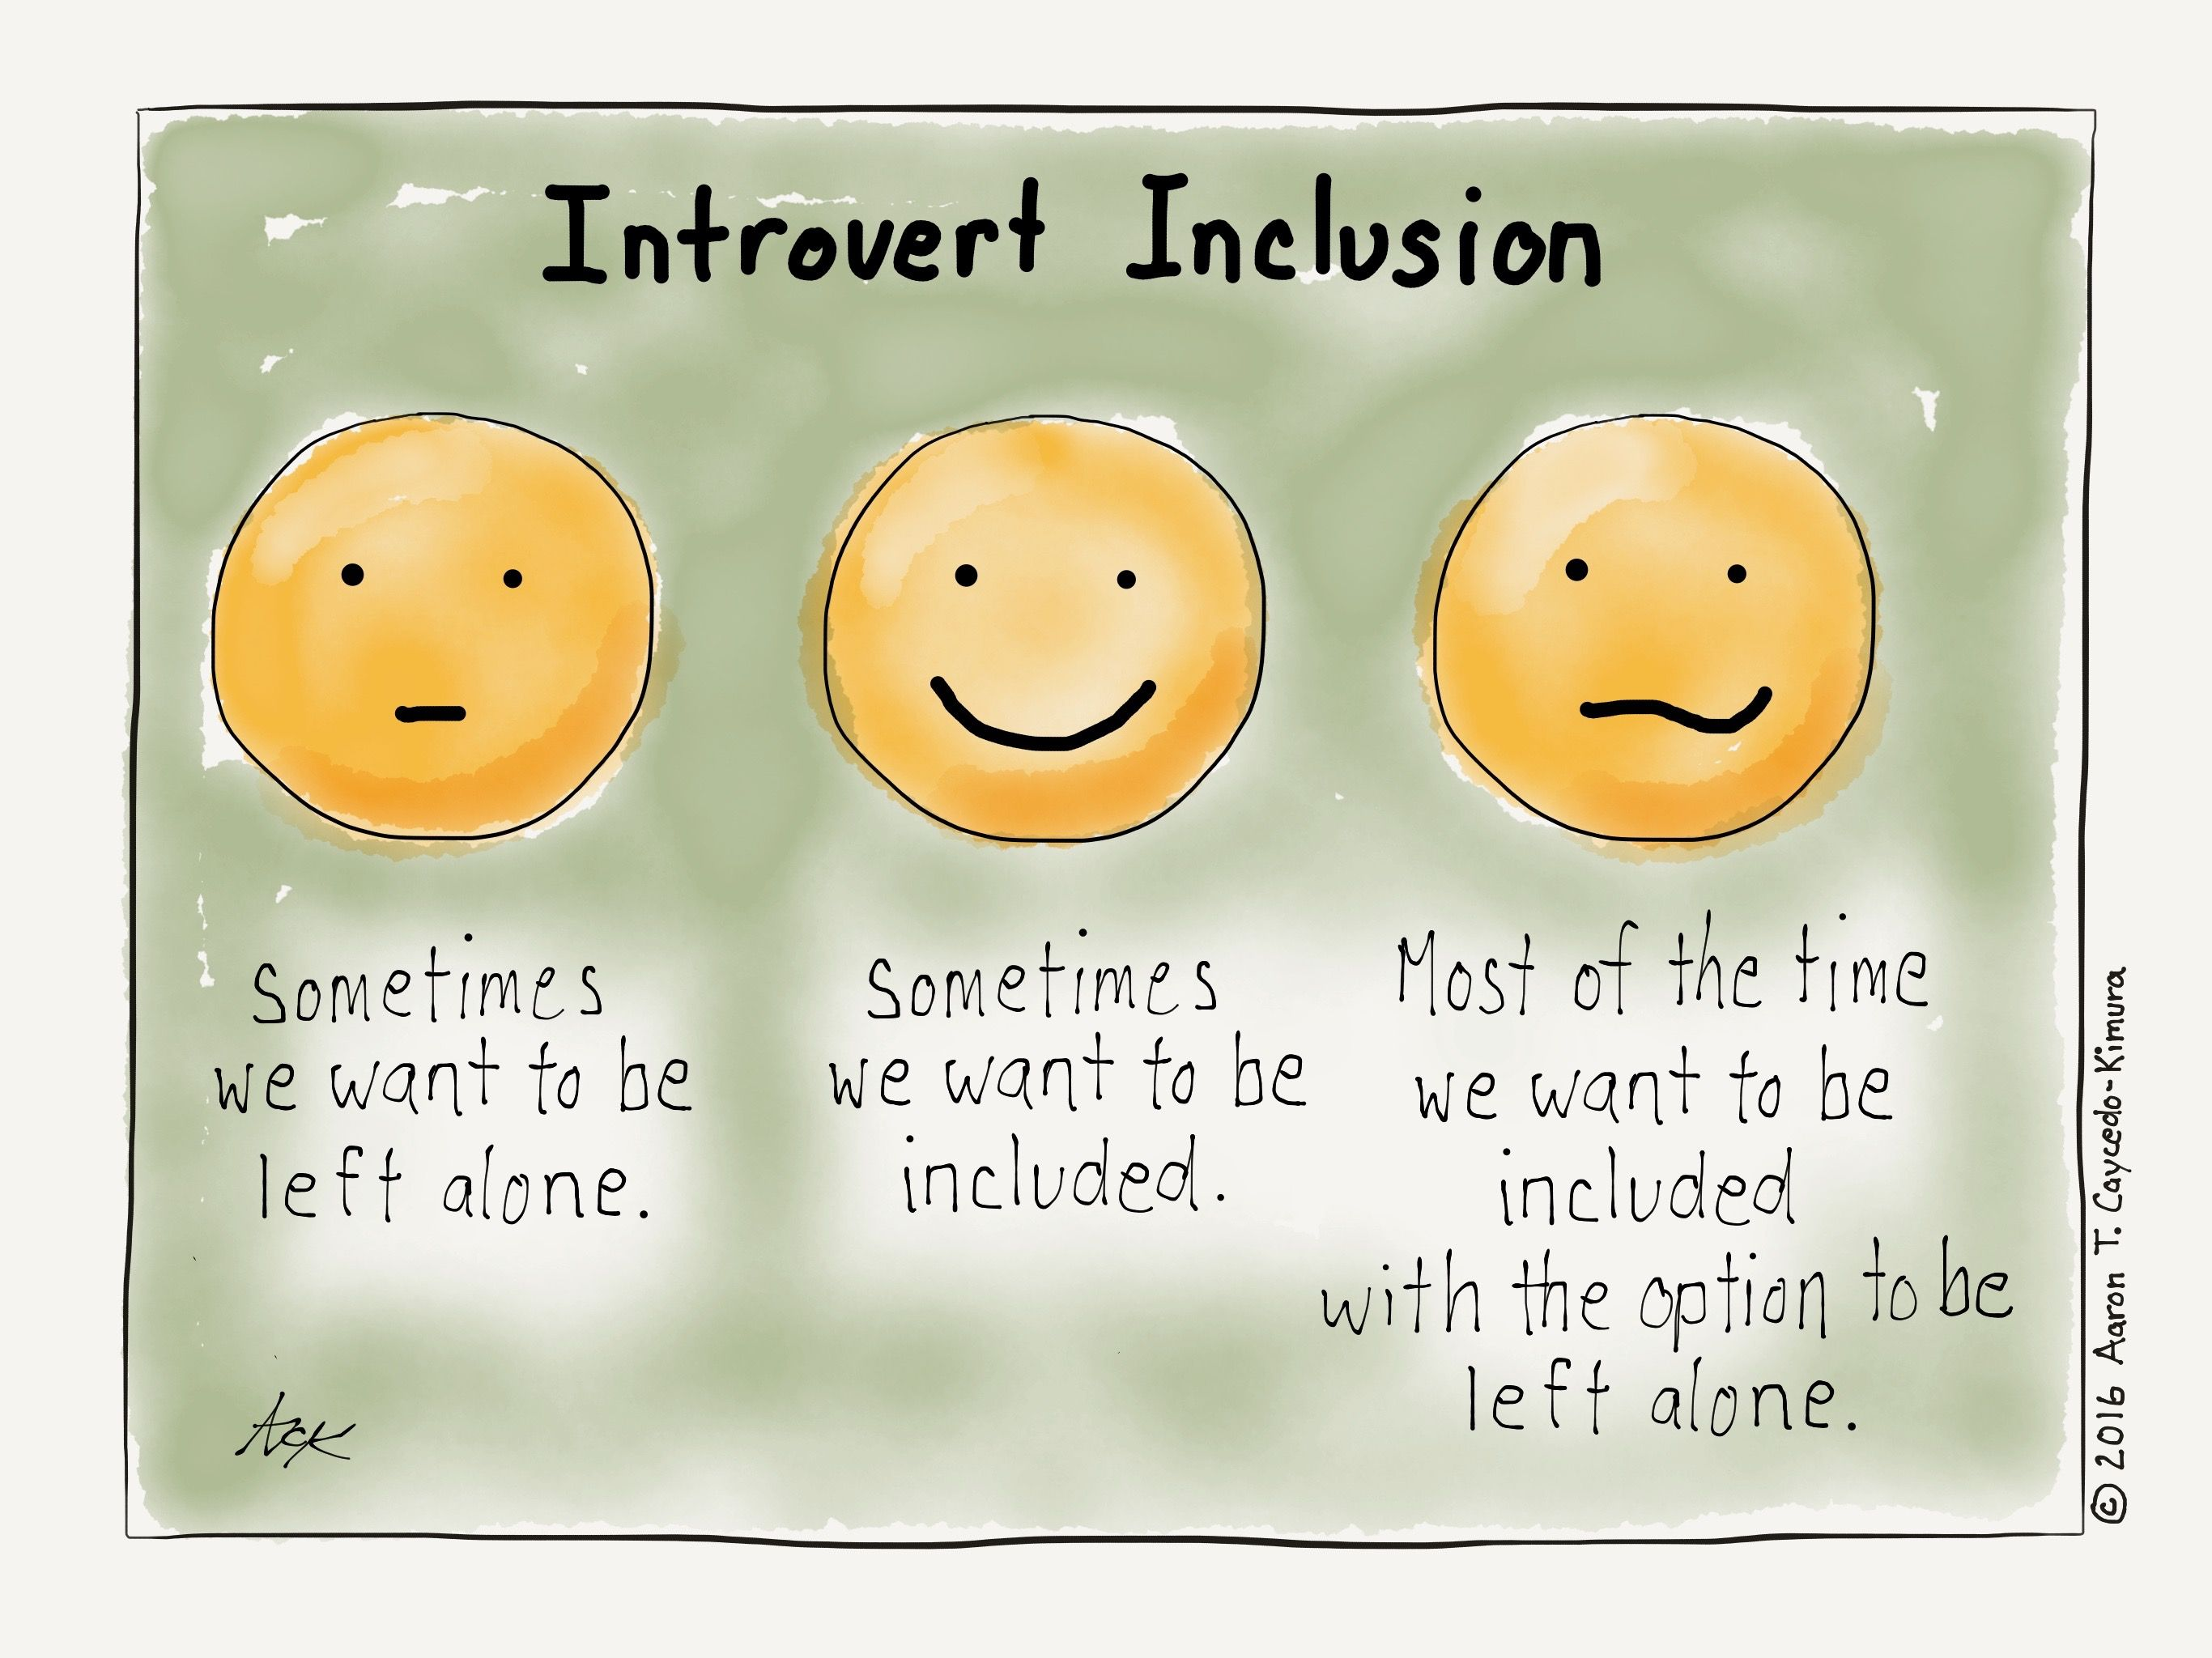 best ideas about introvert introvert quotes my introvert inclusion